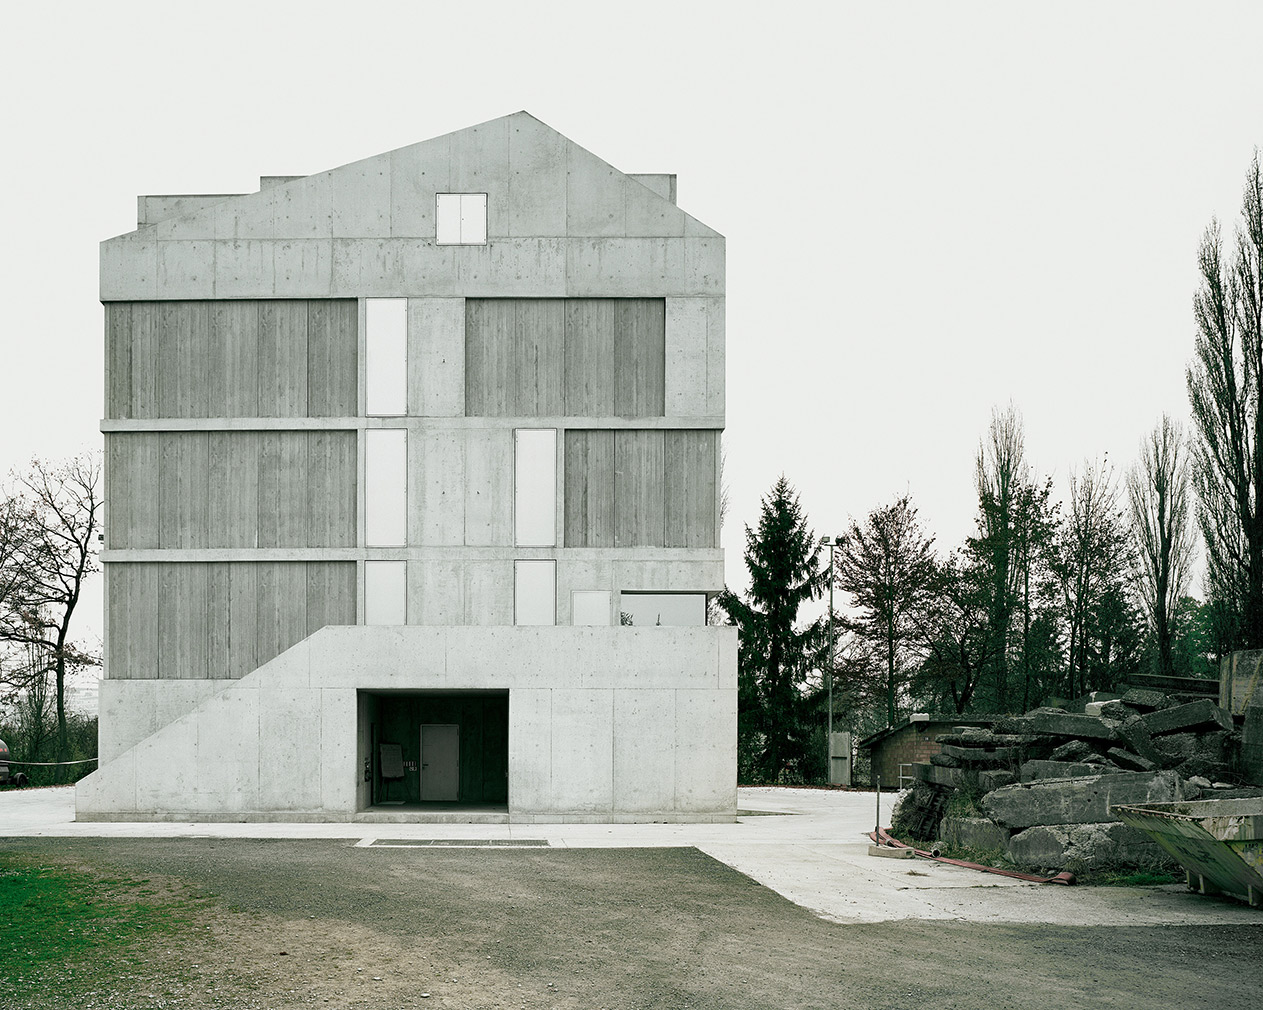 New swiss architecture a decade of architectural hits Architecture home learning courses